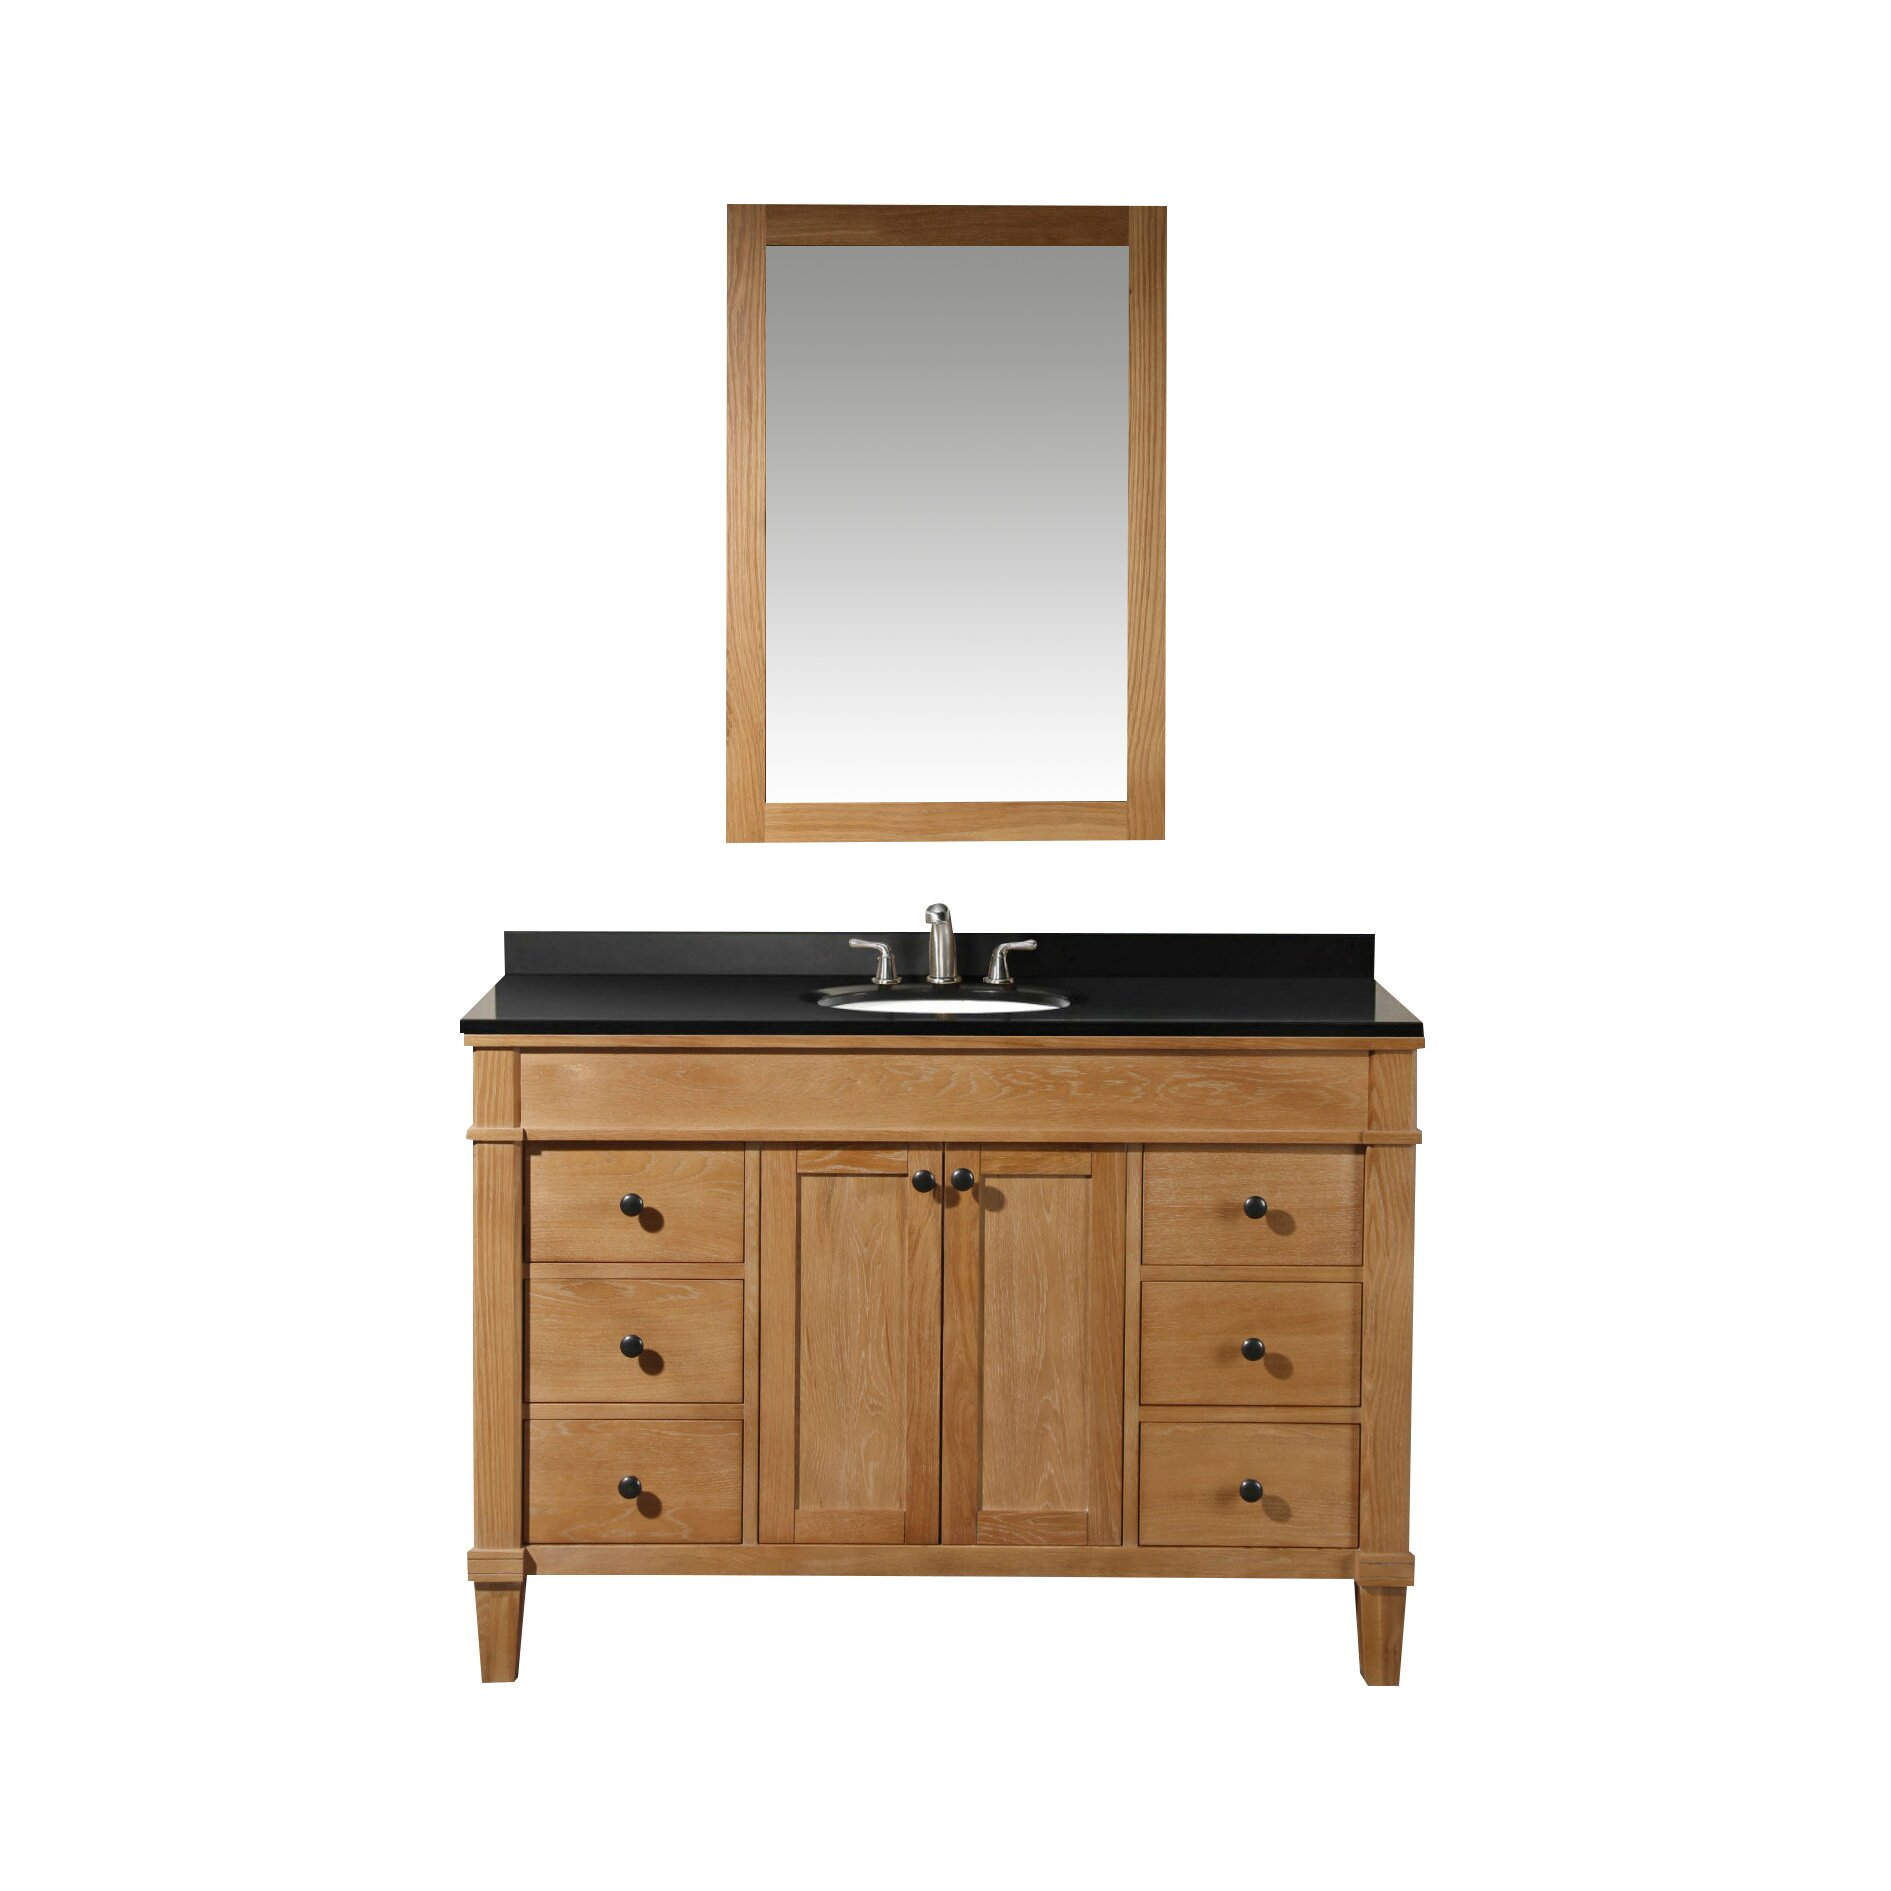 Legion furniture 49 single bathroom vanity set reviews - Wayfair furniture bathroom vanities ...